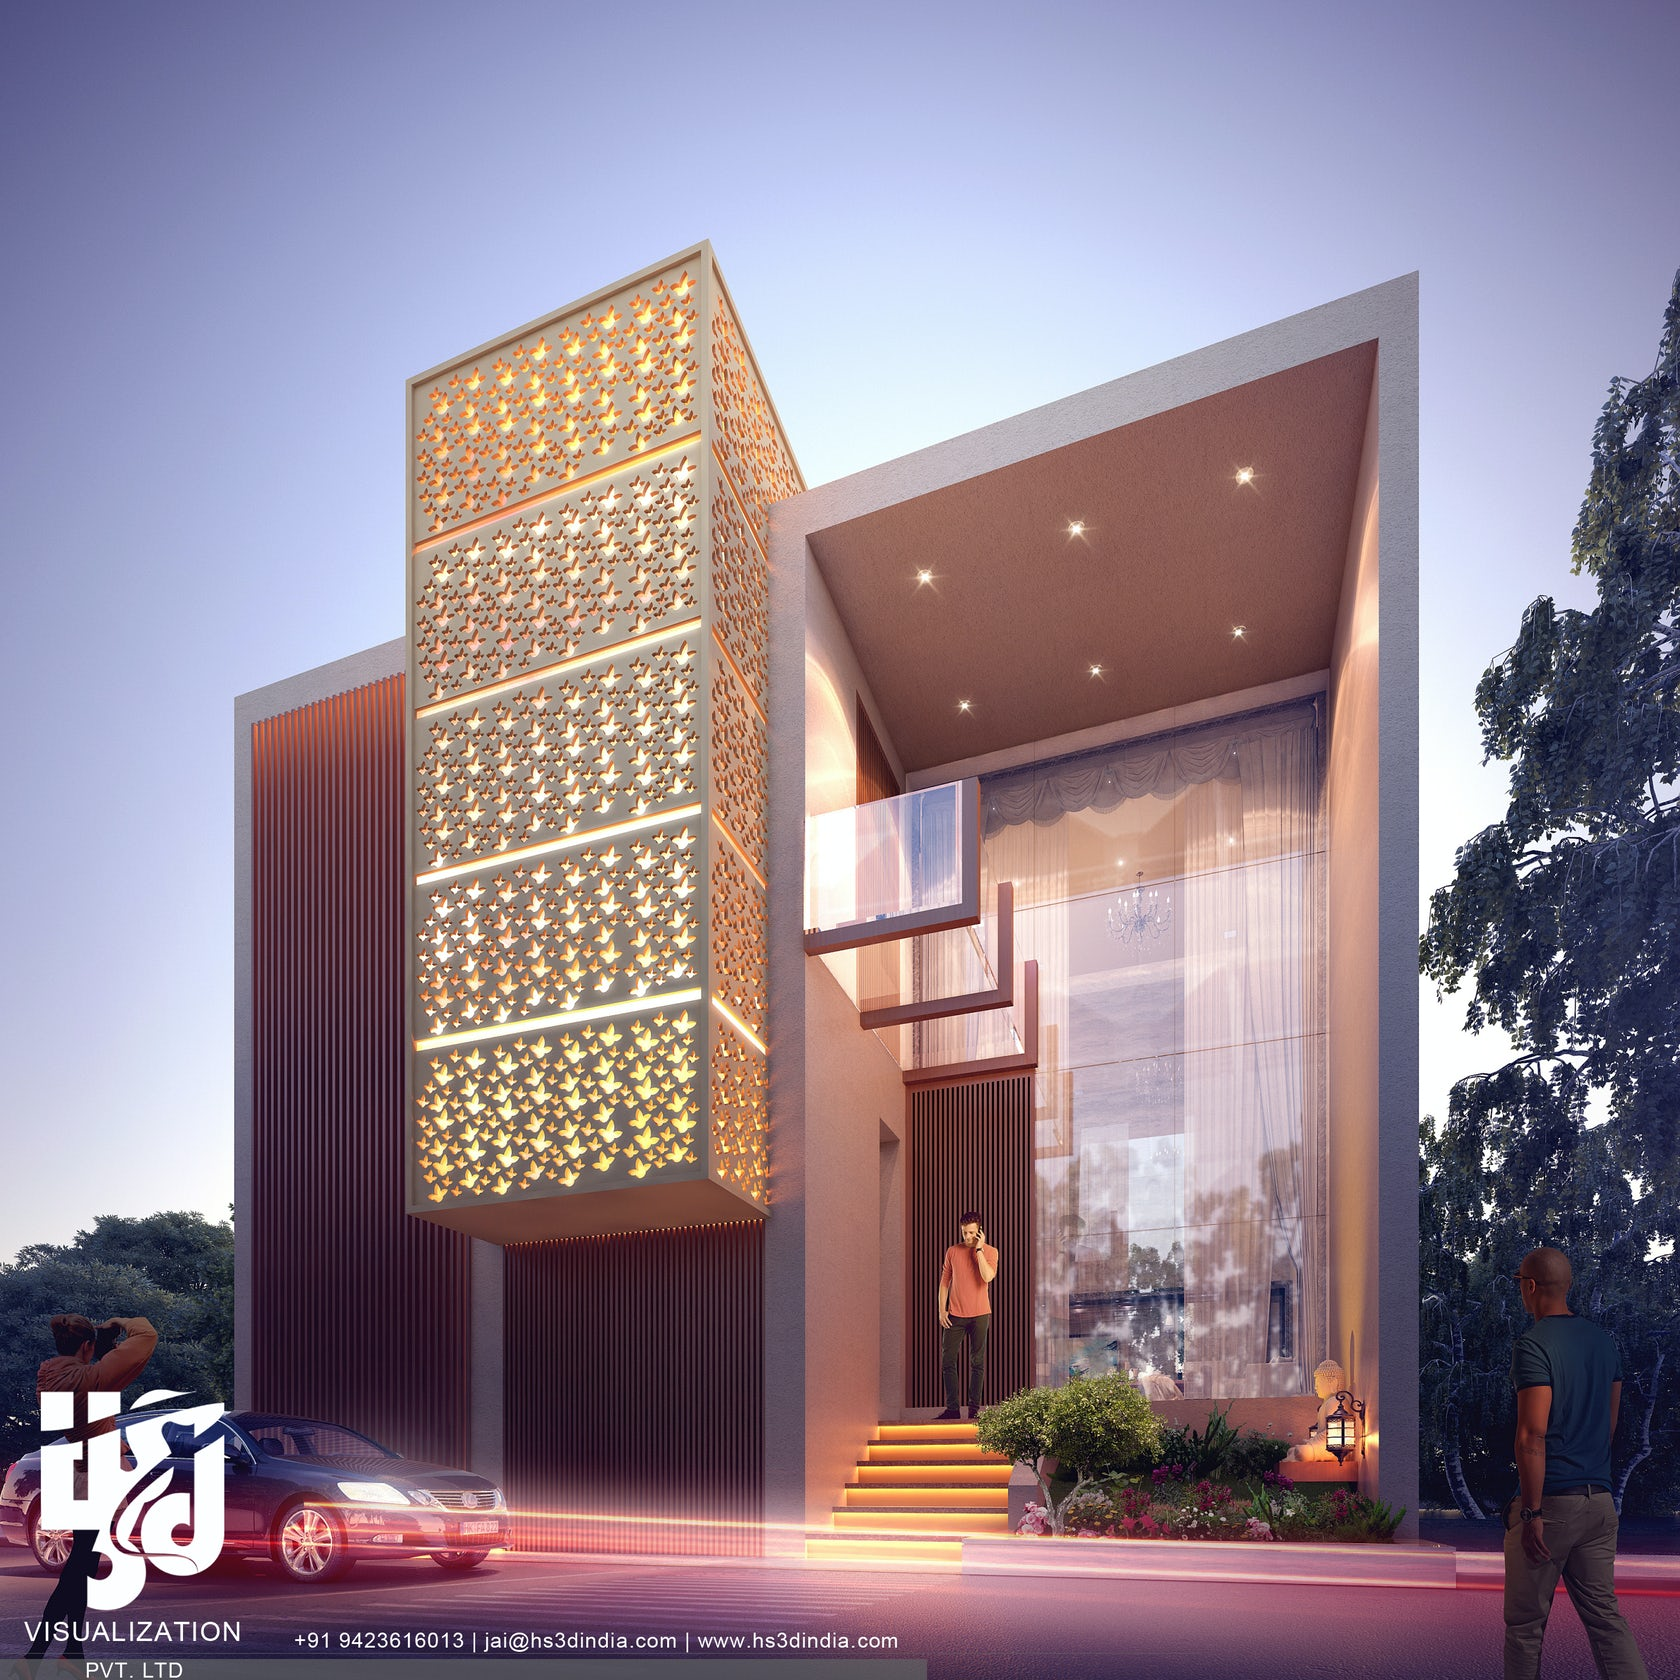 Architecture Exterior: RESIDENTIAL EXTERIOR NIGHT RENDERING BY HS 3D INDIA